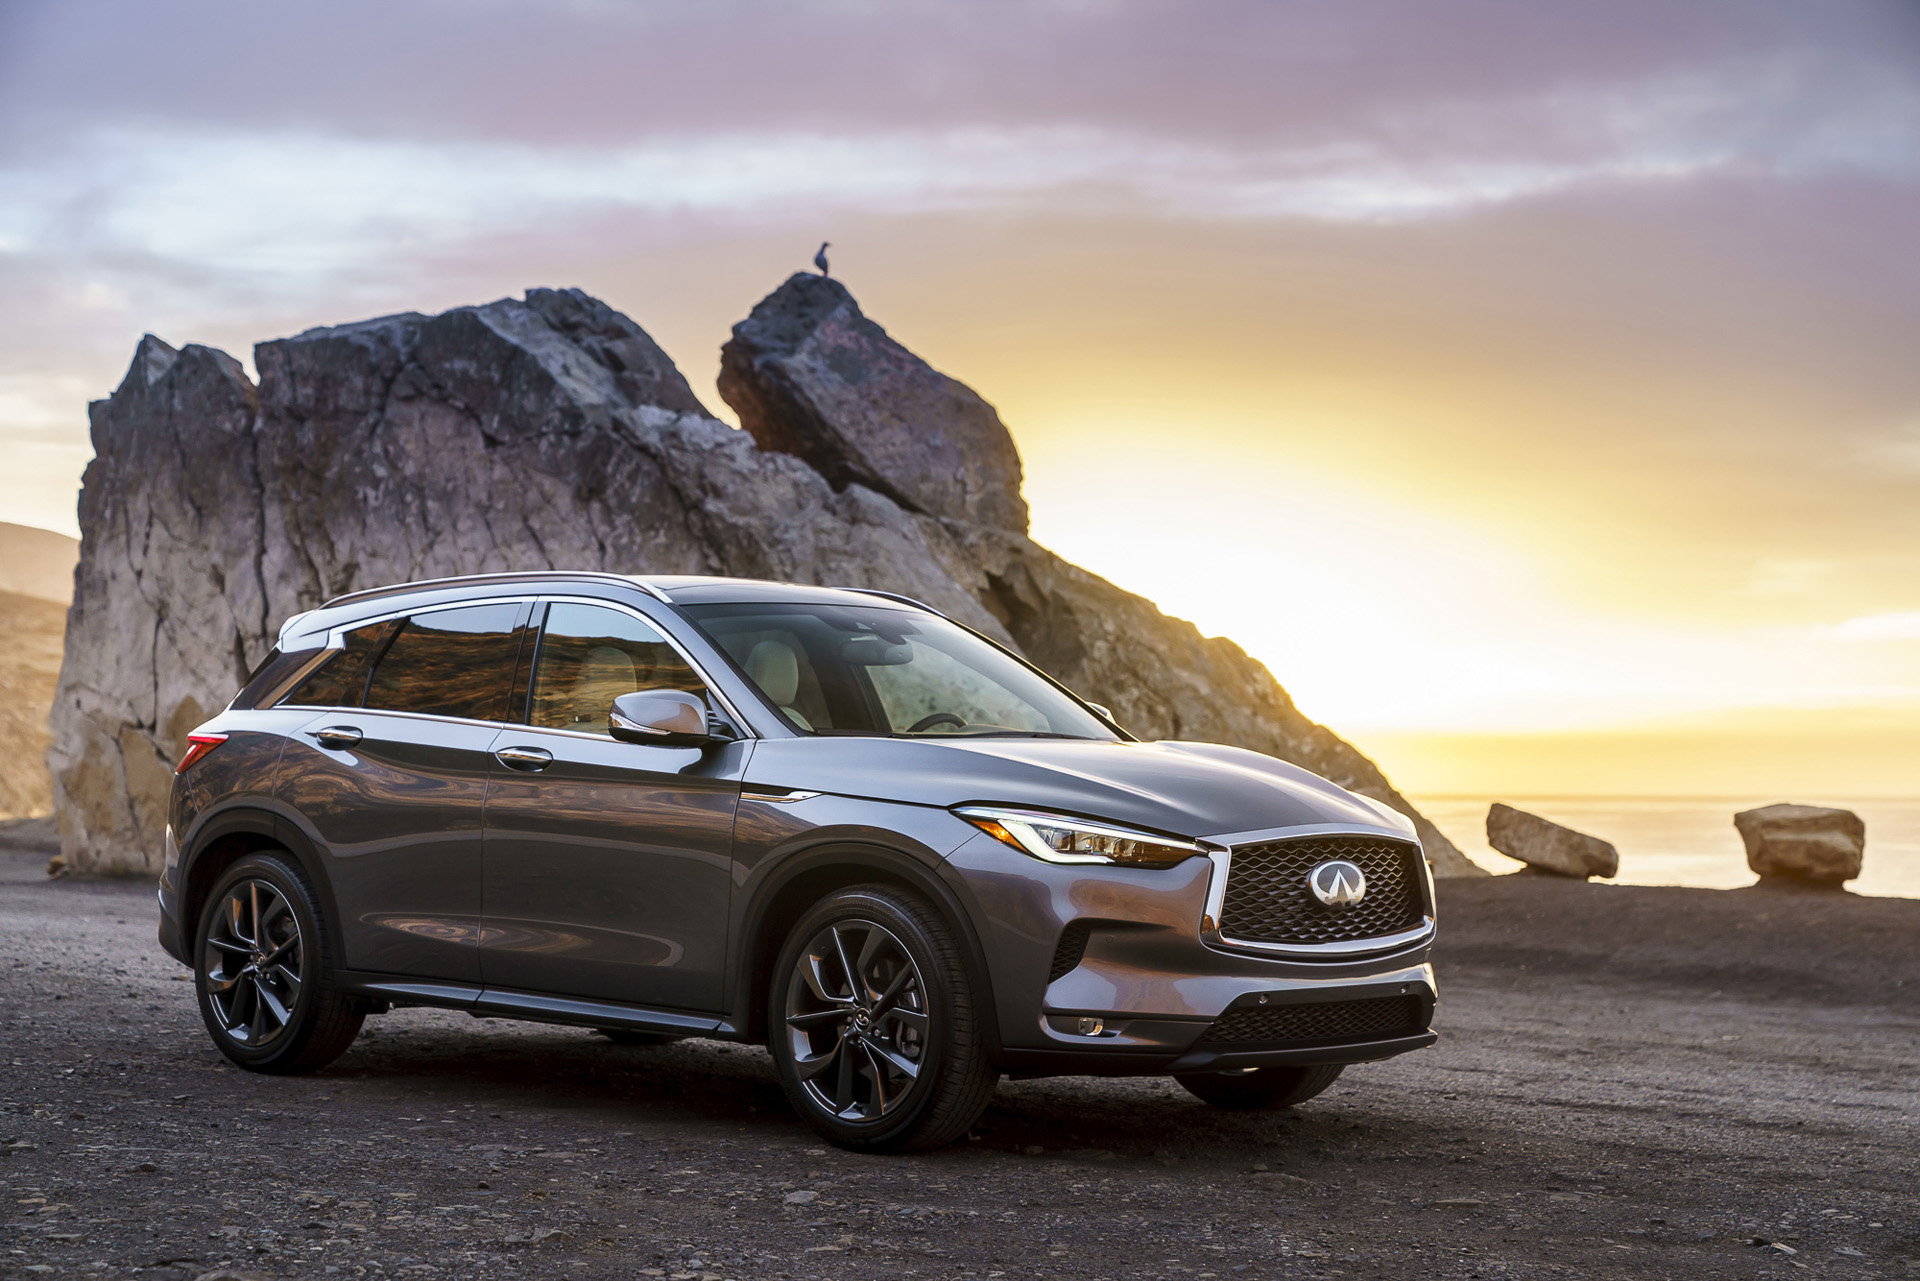 51 The New 2019 Infiniti Qx50 Horsepower Review Price Design And Review